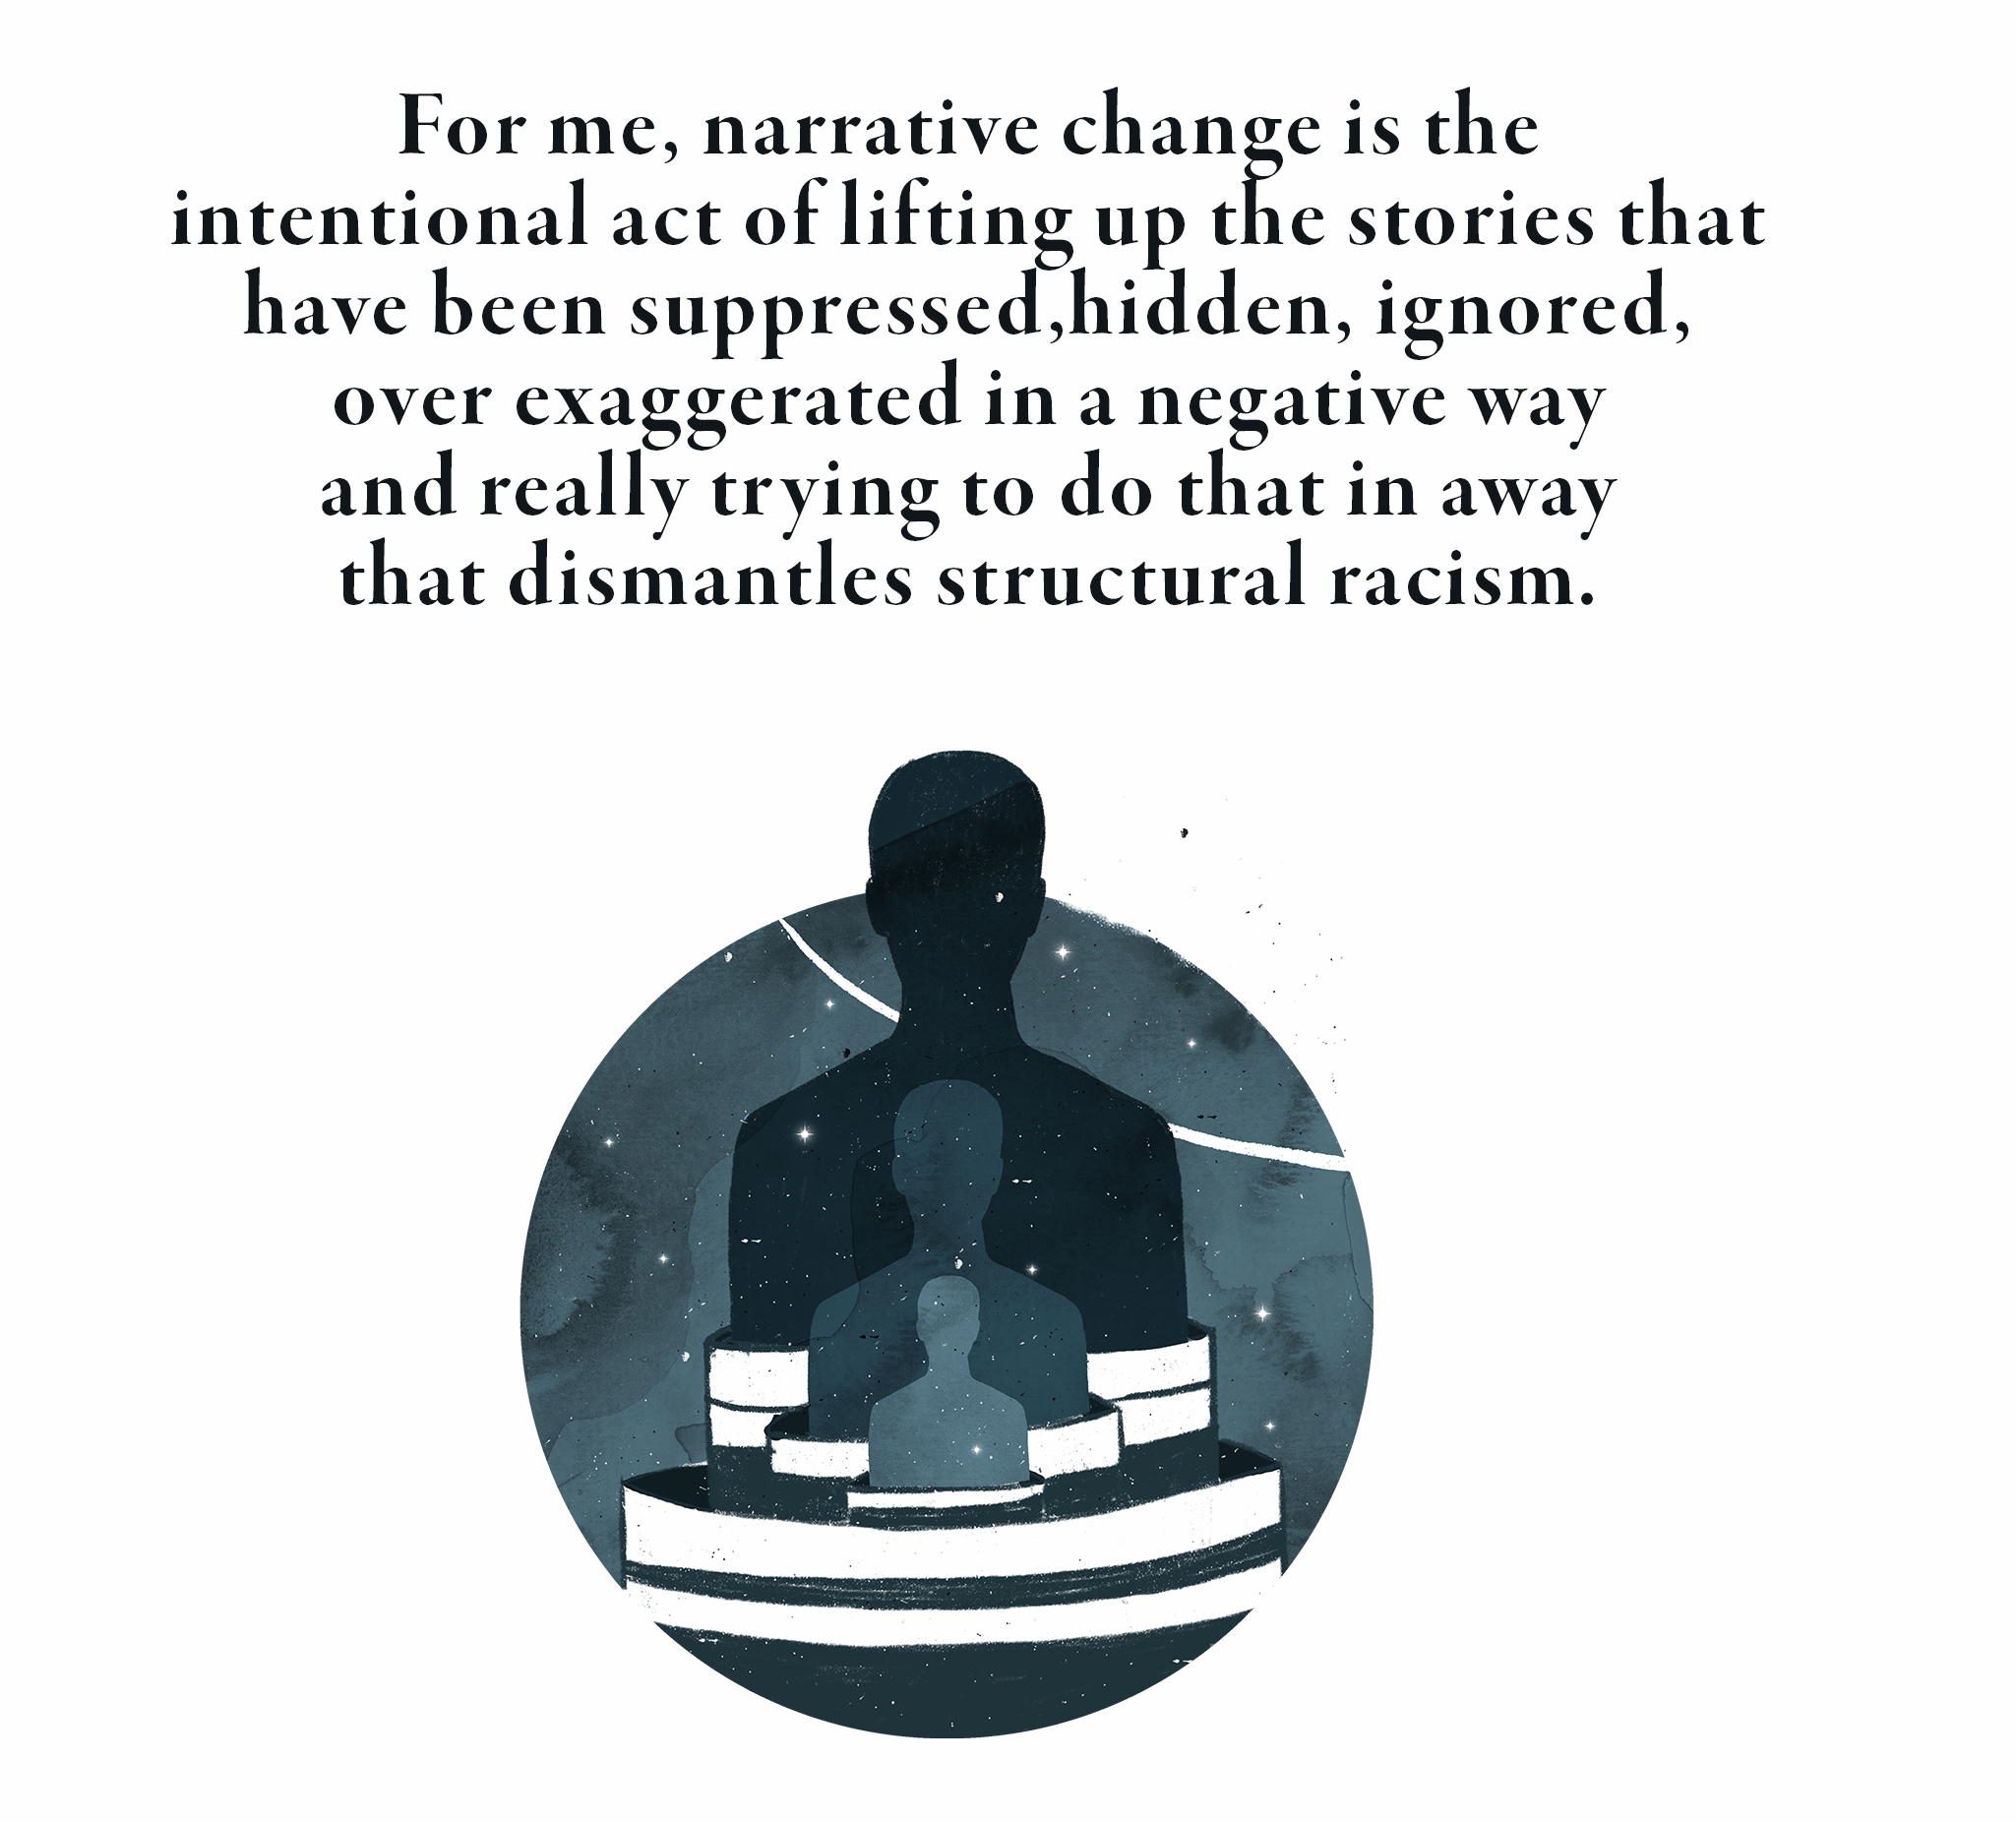 For me, narrative change is the intentional act of lifting up the stories that have been suppressed, hidden, ignored, over exaggerated in a negative way and really trying to do that in a way that dismantles structural racism.